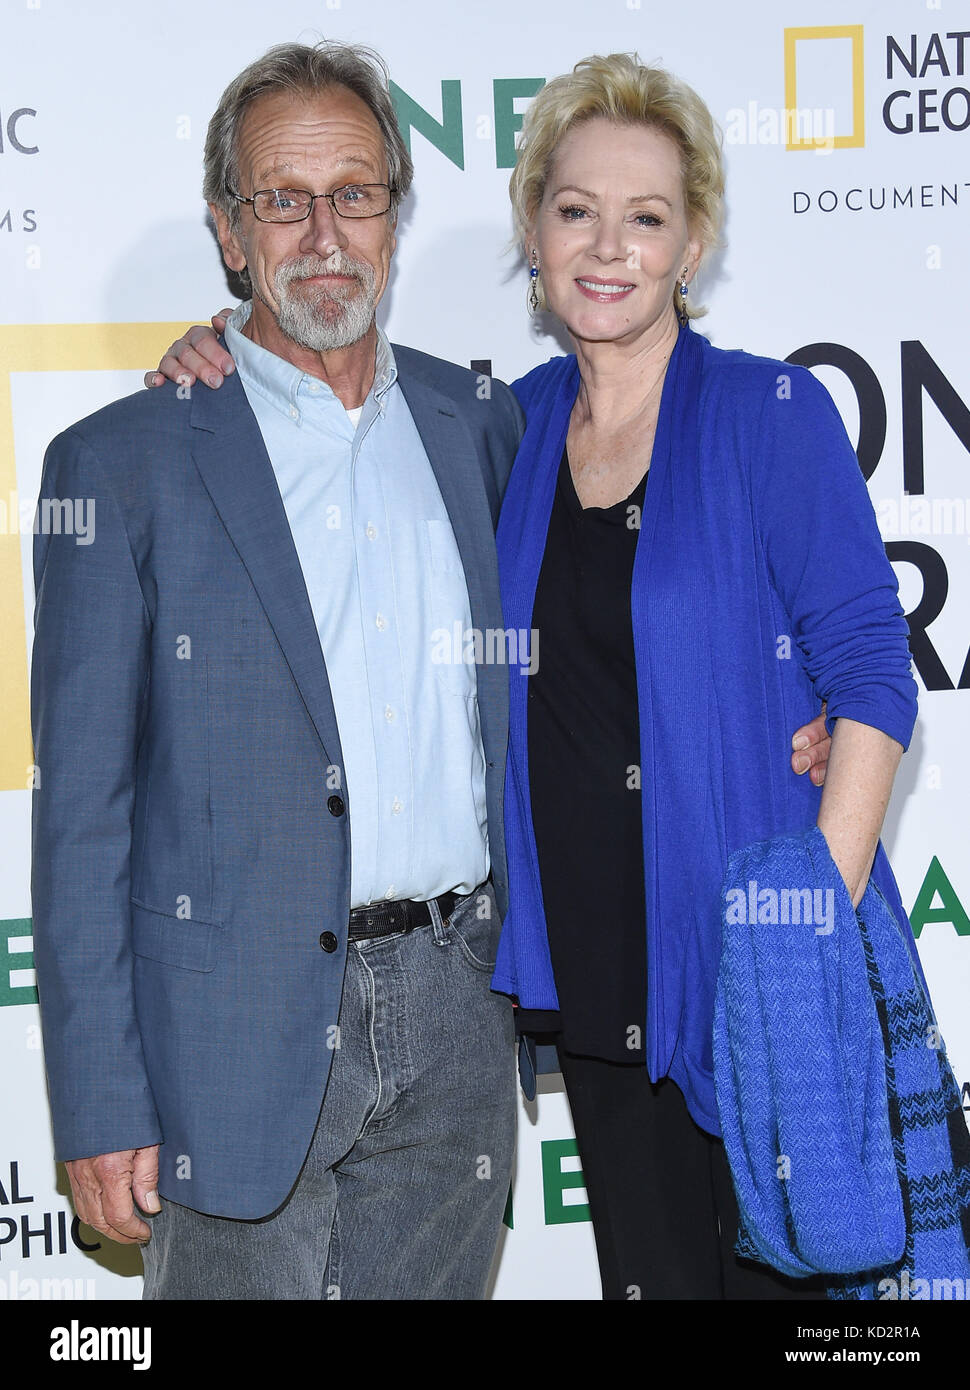 Richard Gilliland High Resolution Stock Photography And Images Alamy Aired thursday 8:00 pm feb 22, 1982 on cbs. https www alamy com stock image hollywood california usa 9th oct 2017 jean smart and richard gilliland 162945814 html